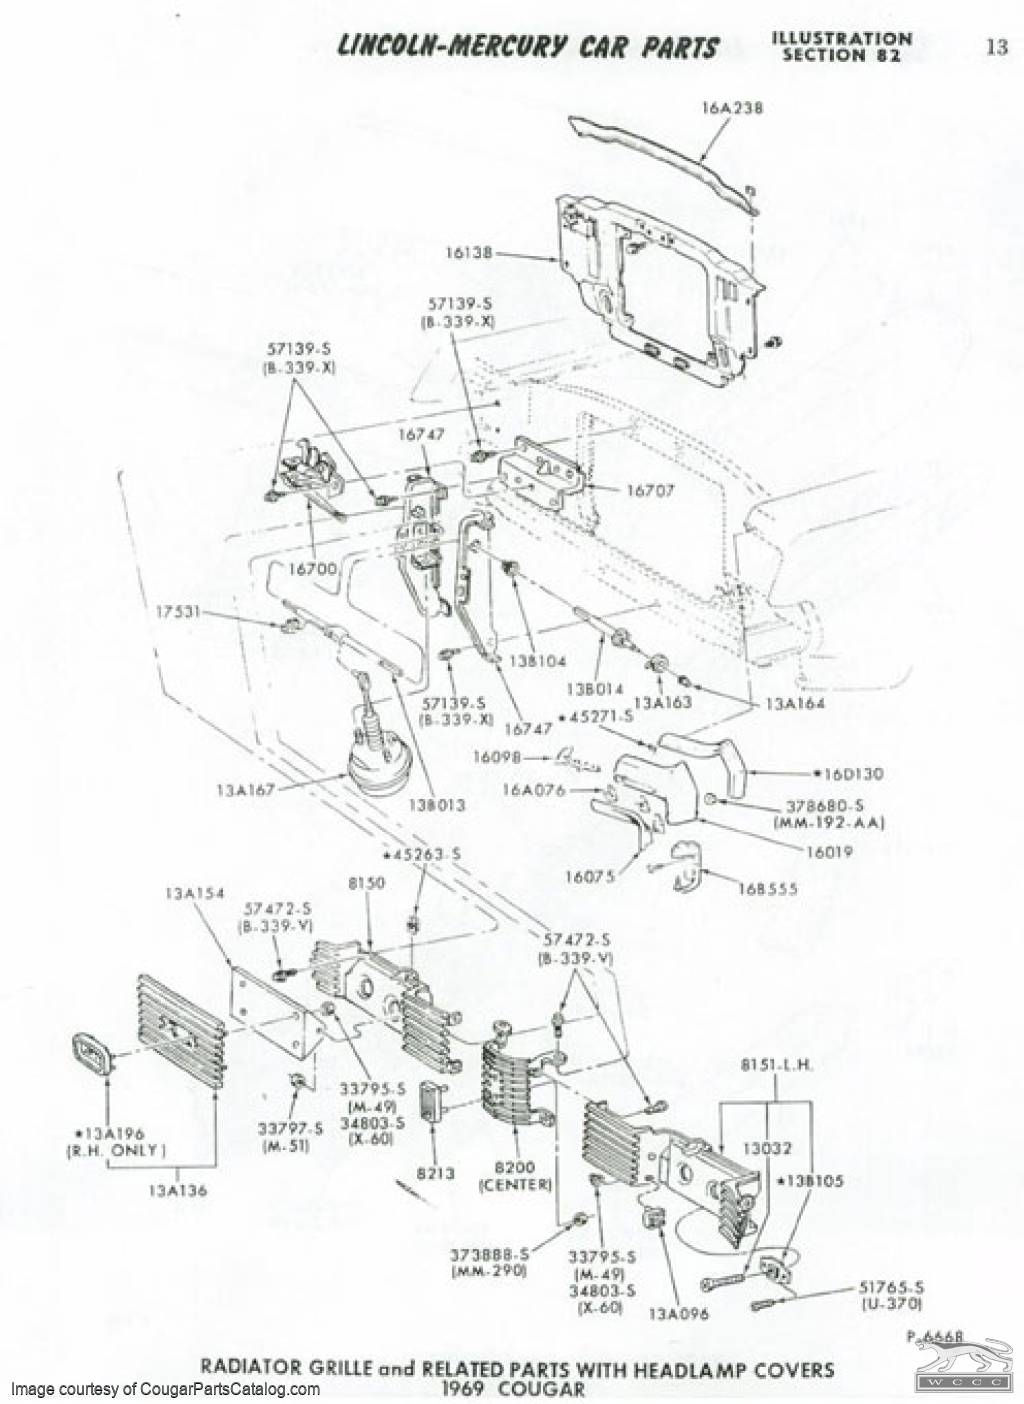 1973 Ford Ranchero Vacuum Diagram. Ford. Auto Wiring Diagram